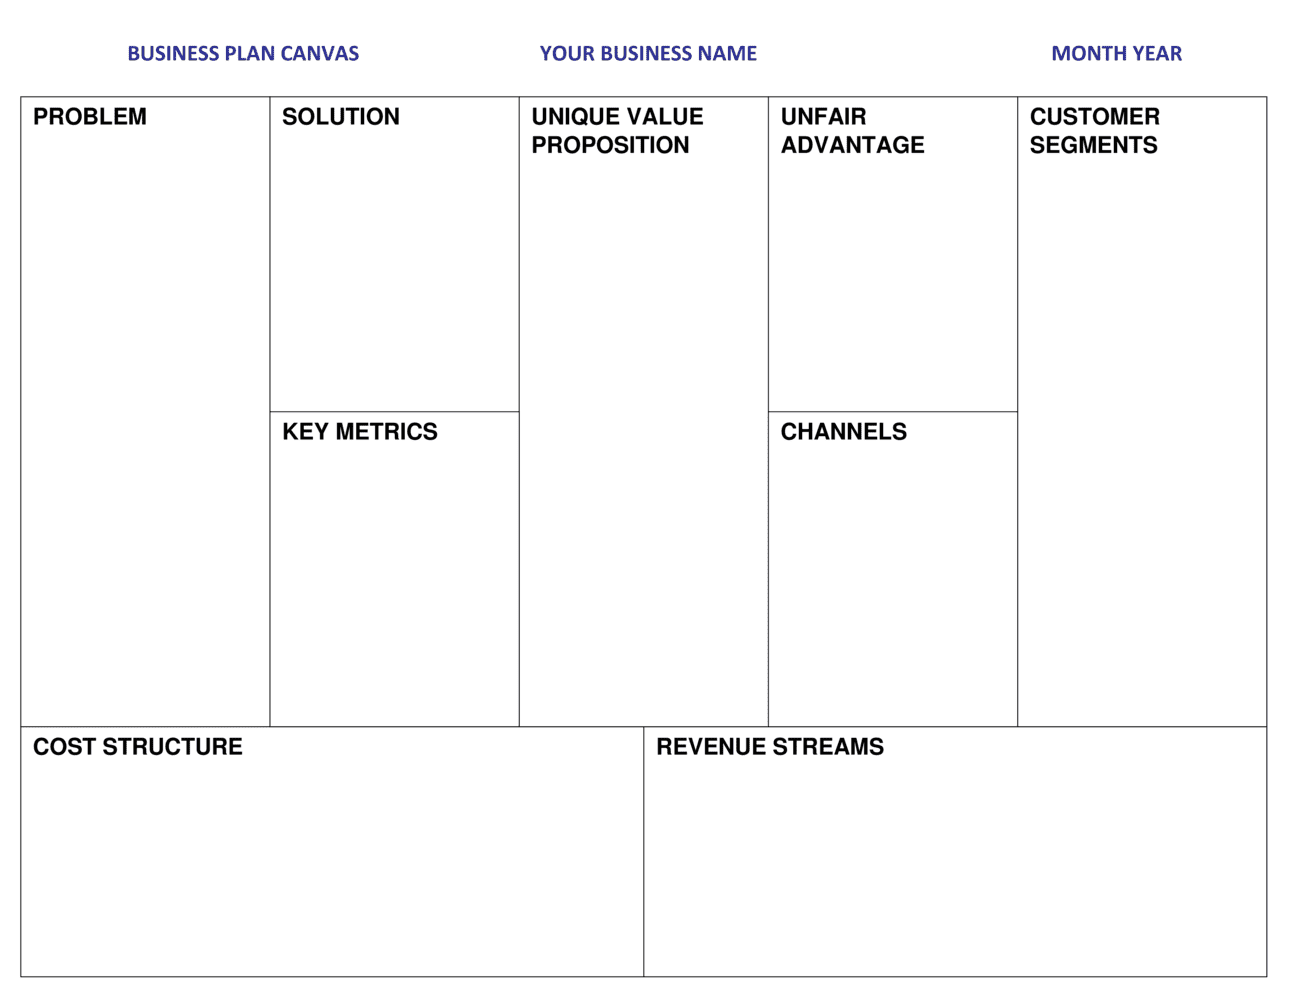 Business-in-a-Box's Business Plan Canvas (One Page) Template